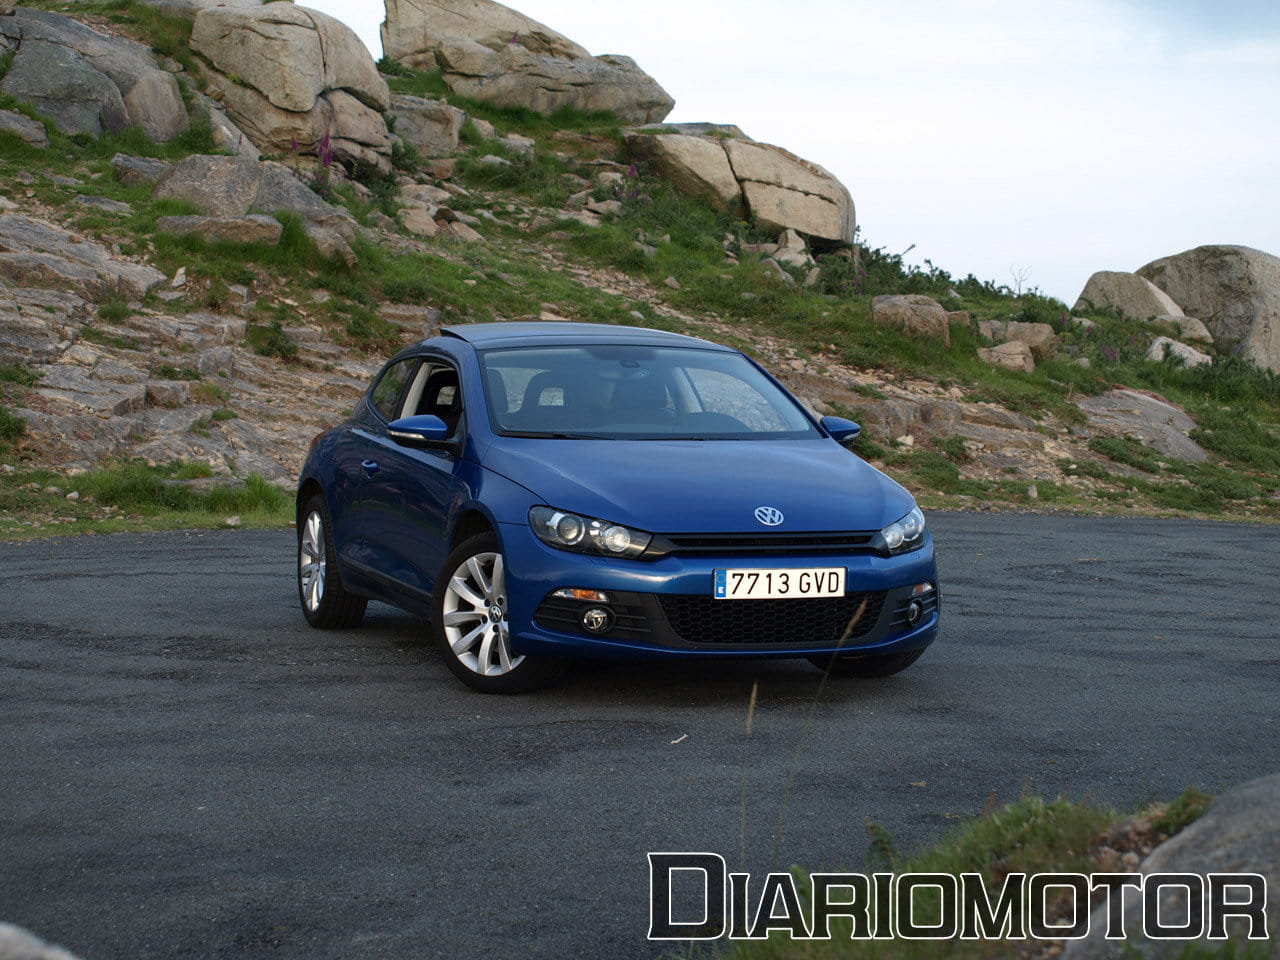 volkswagen scirocco 1 4 tsi de 160 cv vs 2 0 tdi de 140 cv mini prueba y comparativa i foto. Black Bedroom Furniture Sets. Home Design Ideas